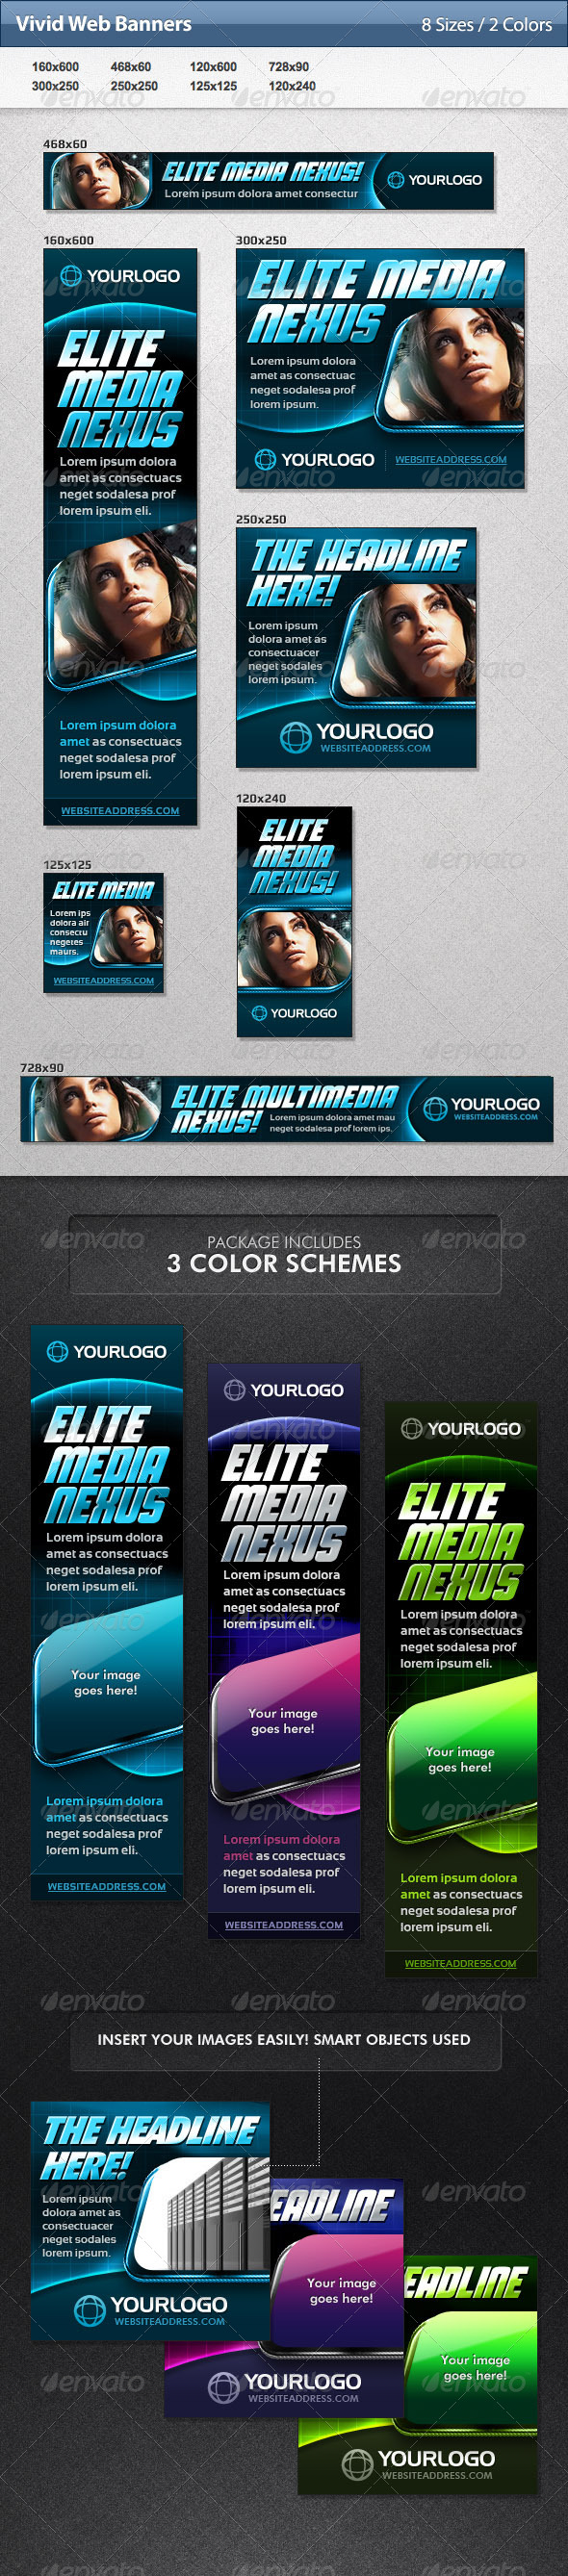 GraphicRiver Vivid Web Banners 4769473